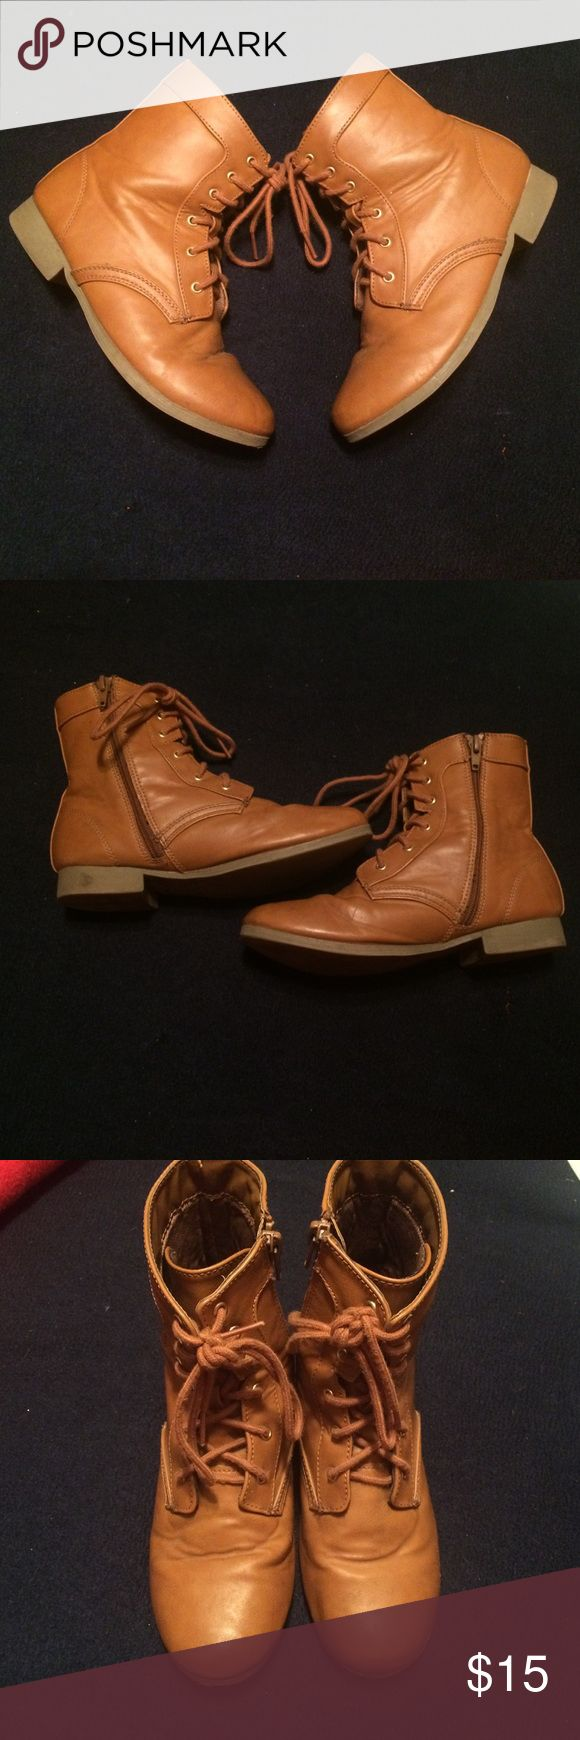 Youth Girls Size 4 Combat/Granny boot Adorable combat(granny) boot. In super good condition( see pics) $10 ( these r equal to a woman's Sz. 6) Shoes Boots